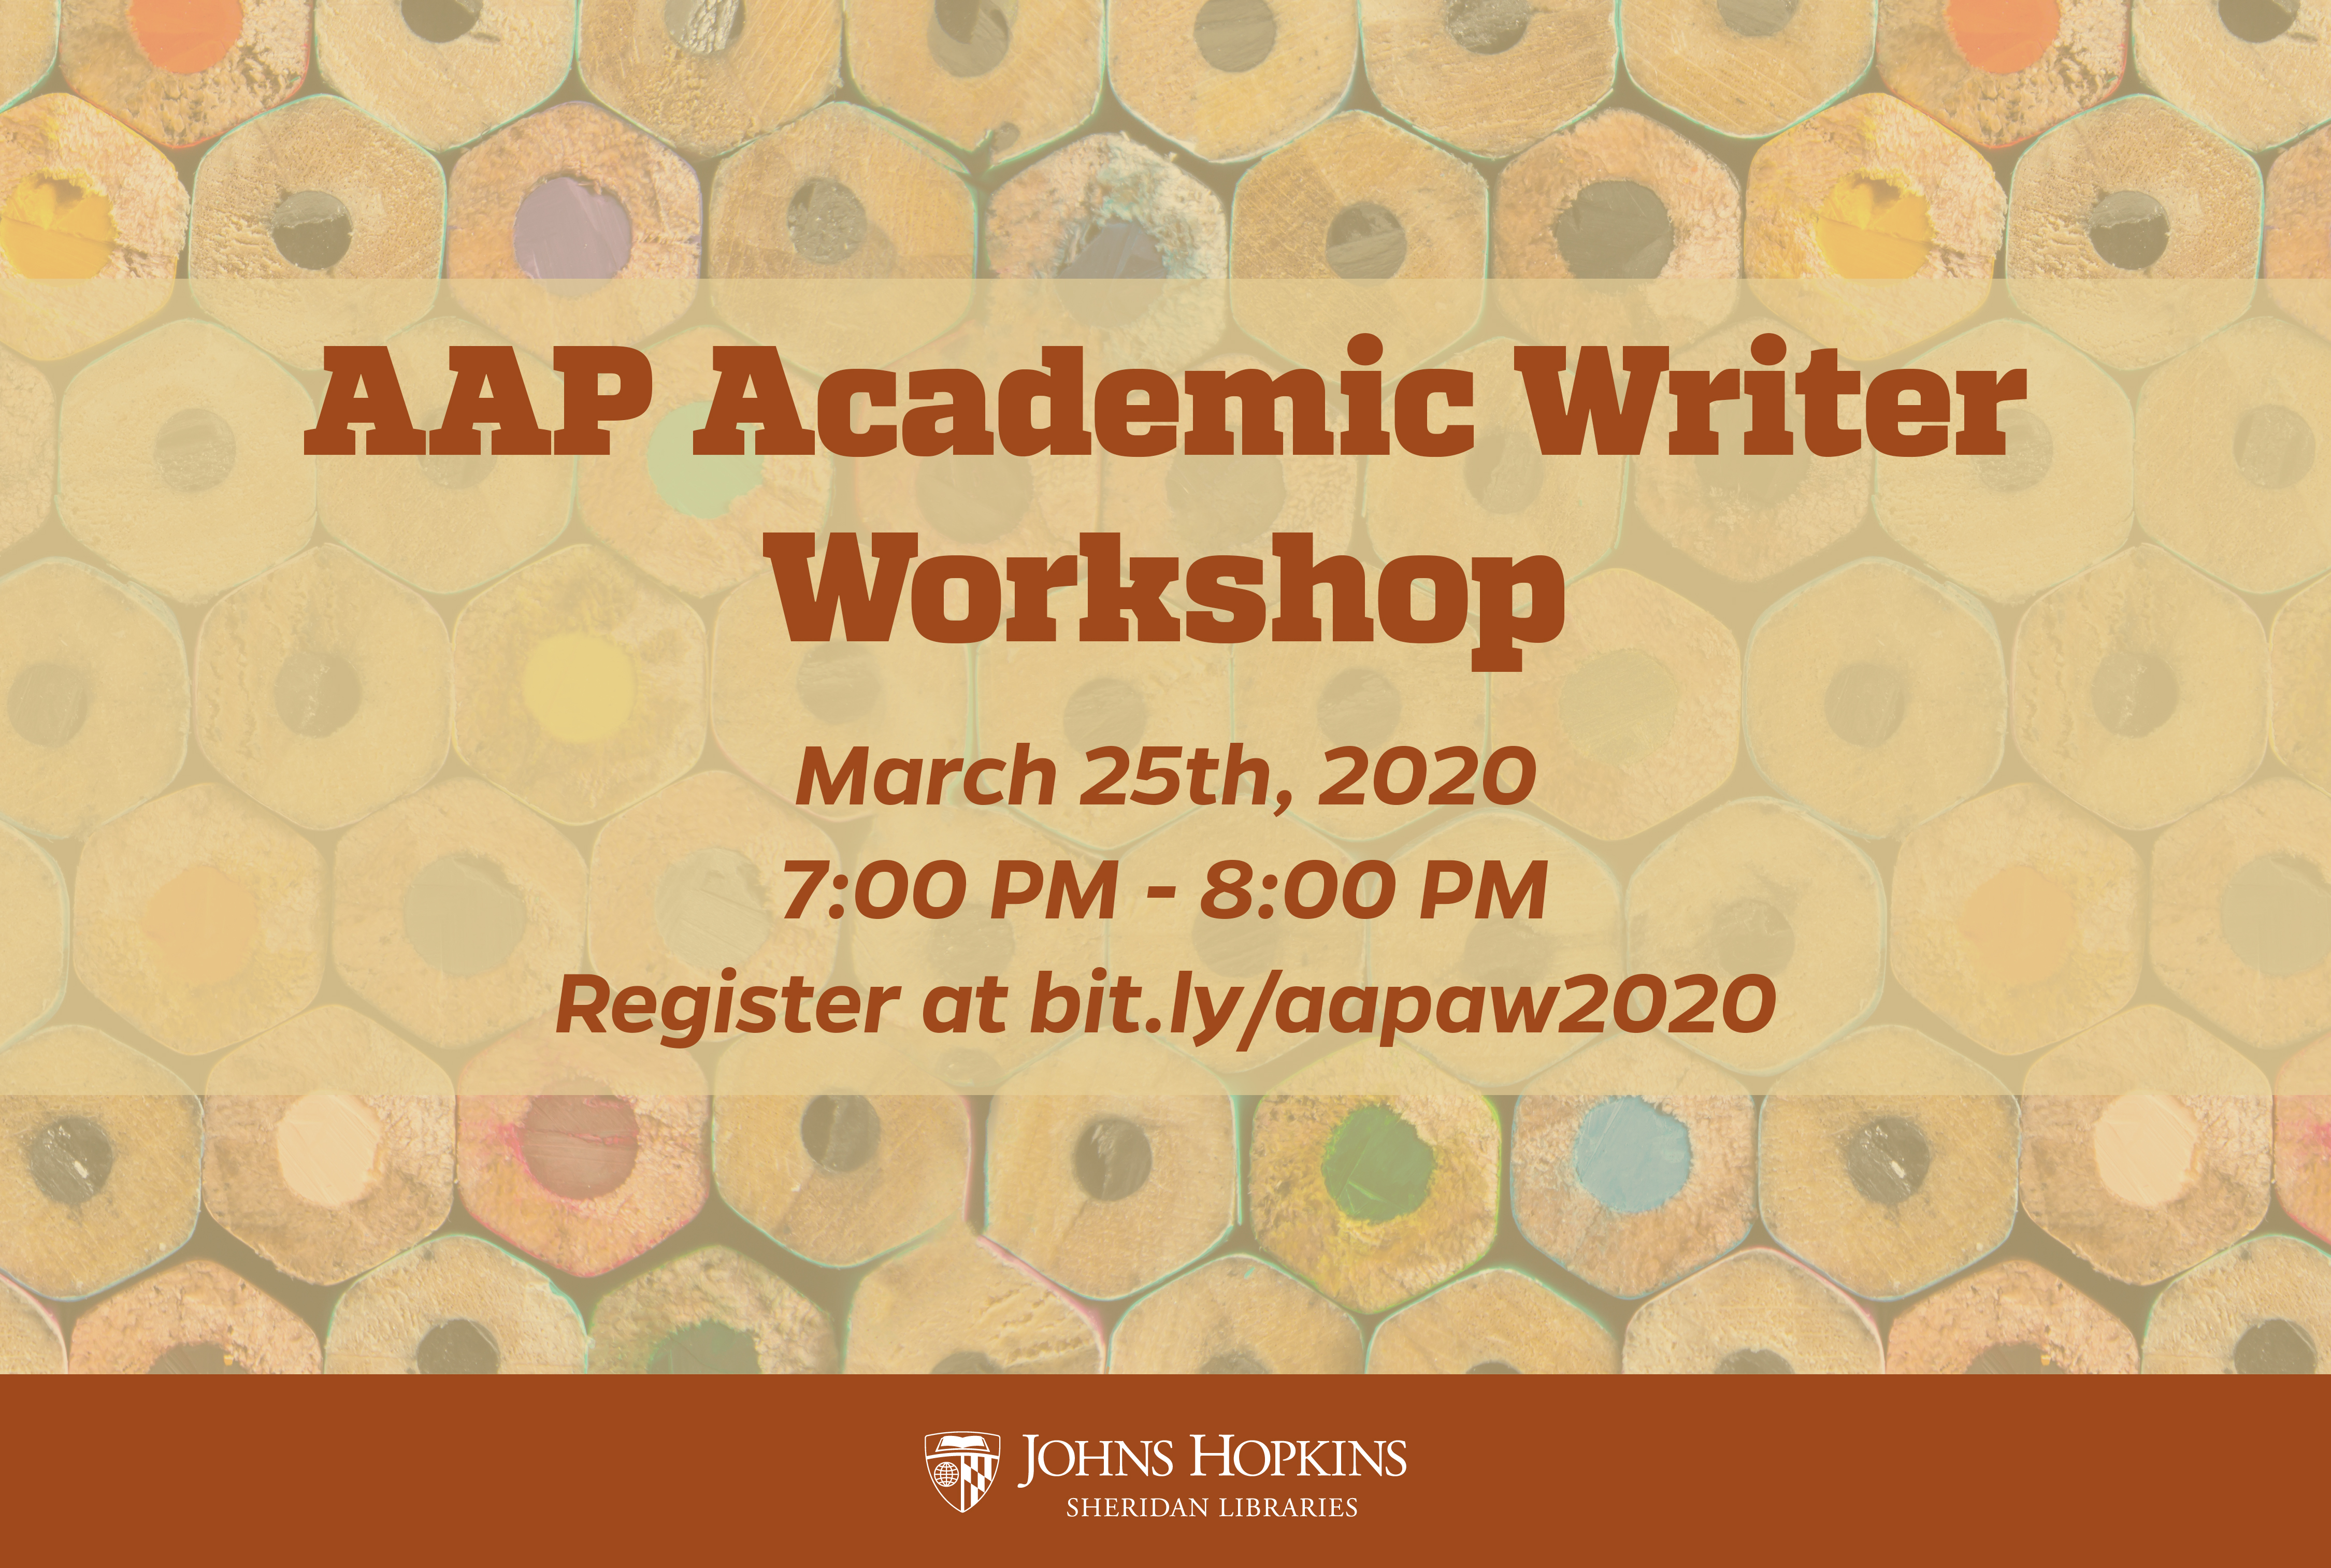 AAP Academic Writer -Click Here To Register